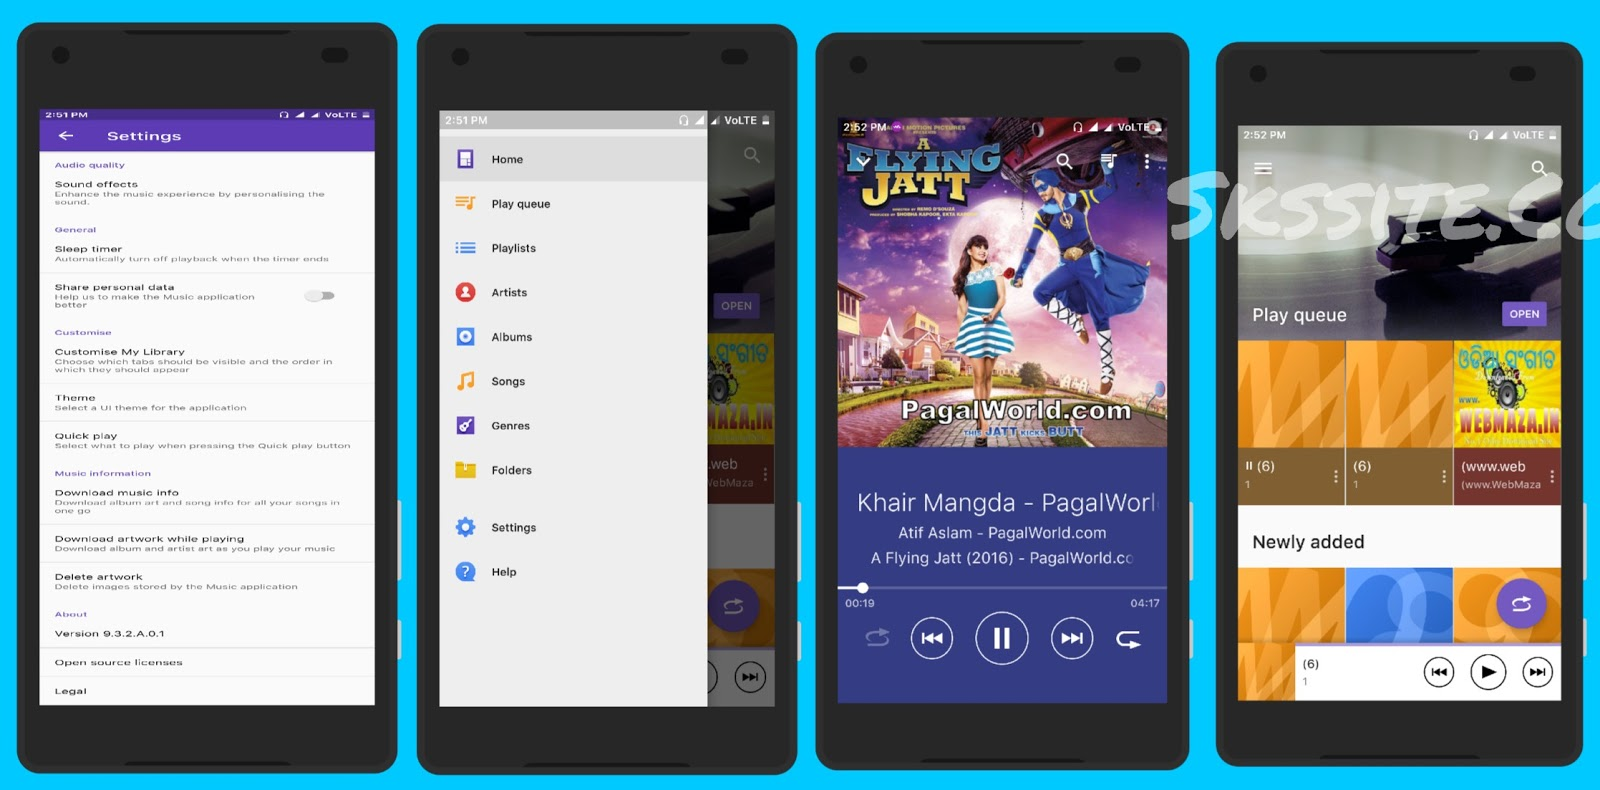 Sony music apk for miui